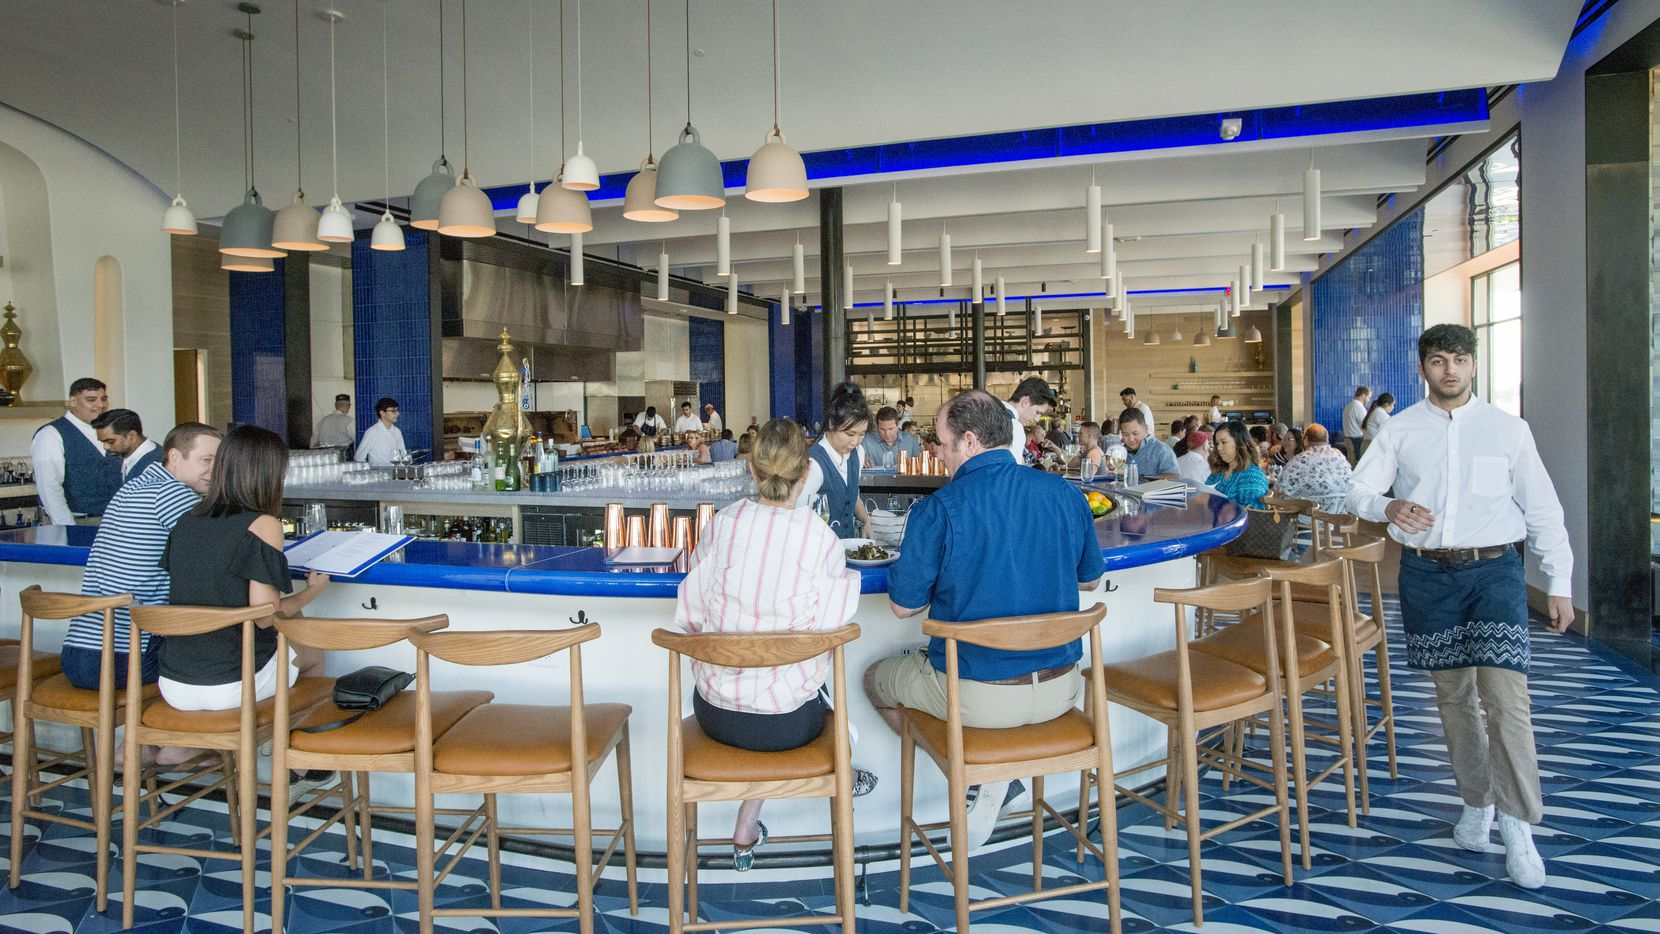 Zaytinya in Frisco was a big, open restaurant with bright splashes of blue.